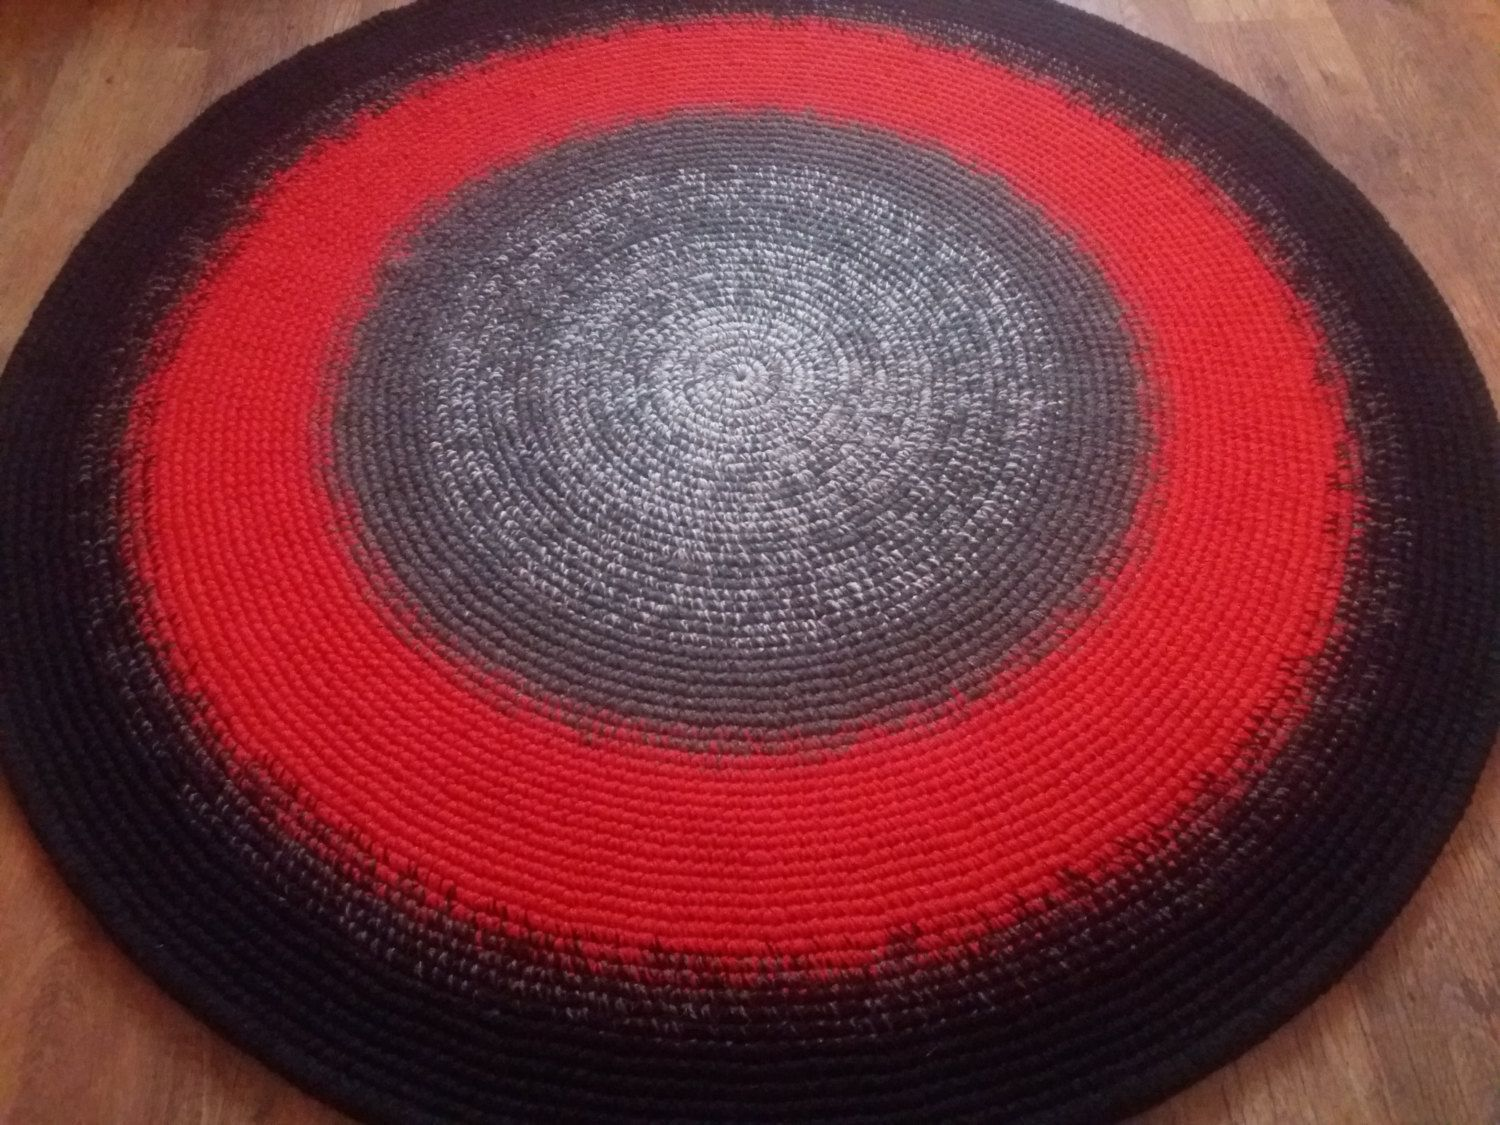 Round rug, 62'' (158 cm)/Rugs/Rug/Area Rugs/Floor Rugs/Large Rugs/Handmade Rug/Carpet/Wool Rug by AnuszkaDesign on Etsy